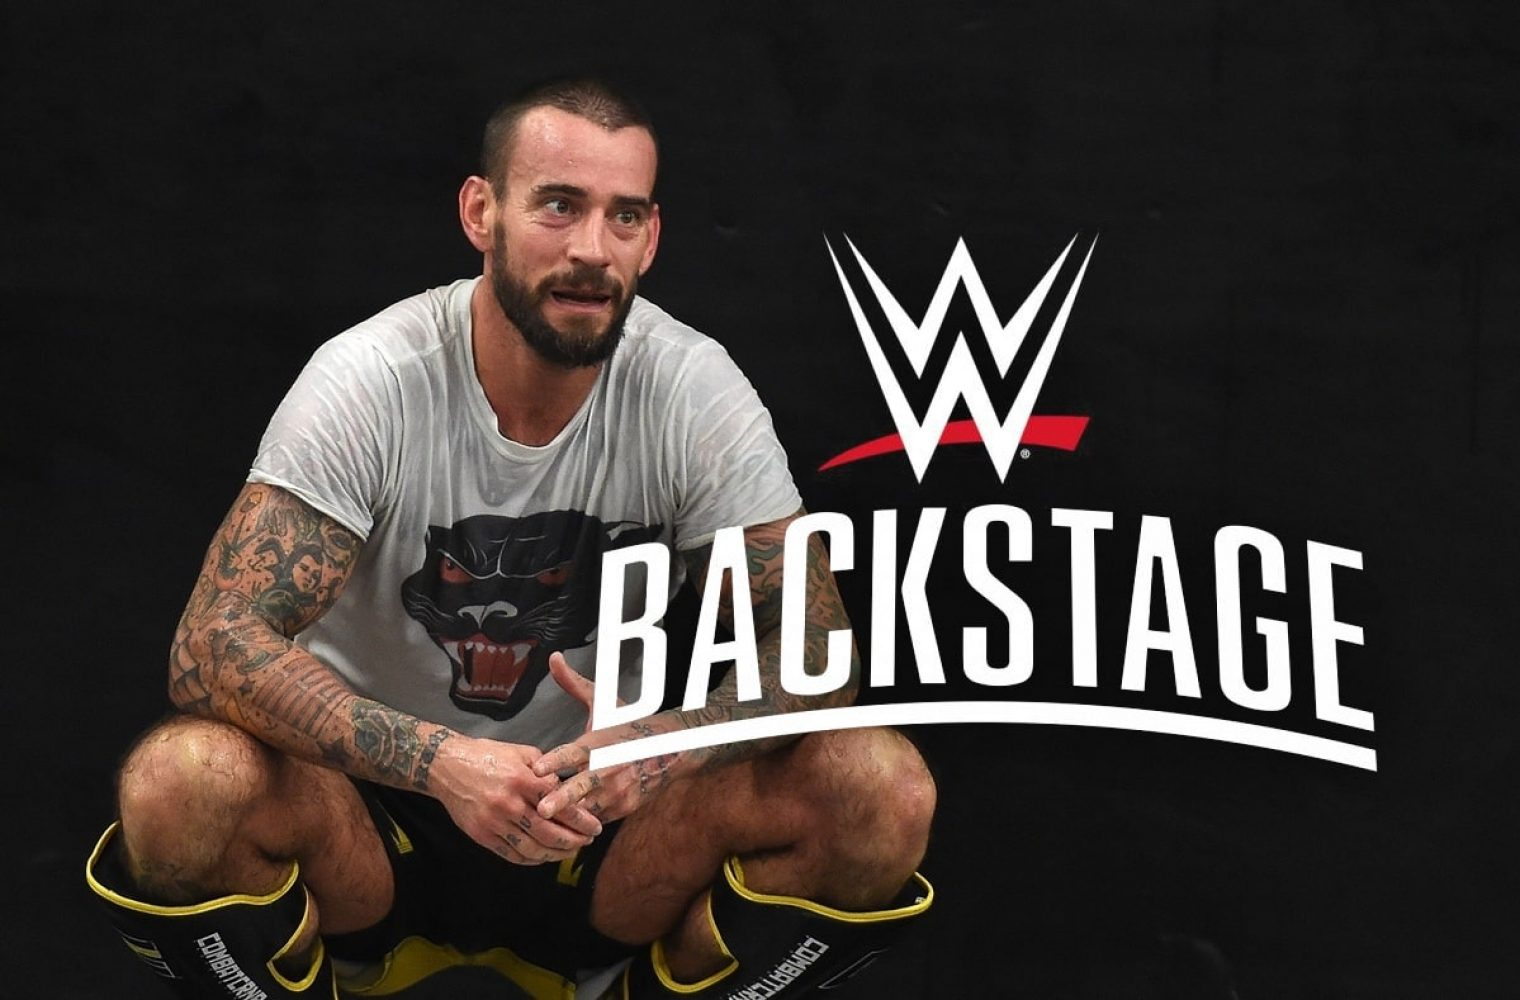 CM Punk Returns To WWE Television And Has Already Been Challenged By Seth Rollins On Twitter